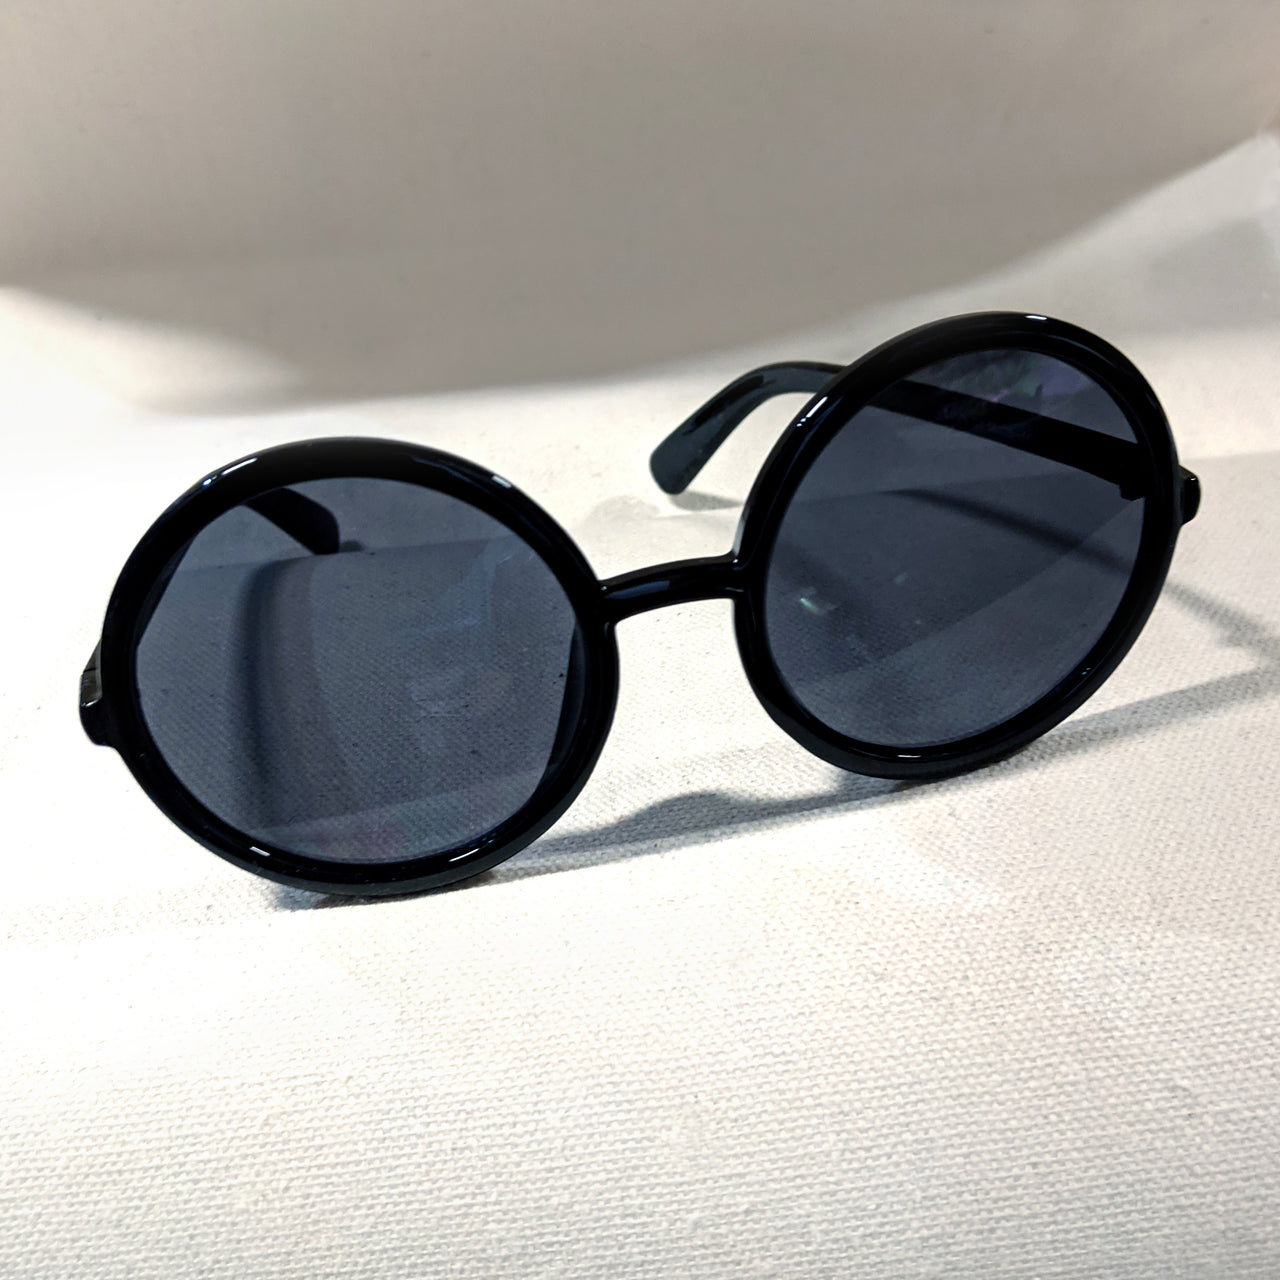 Circular Black Sunglasses